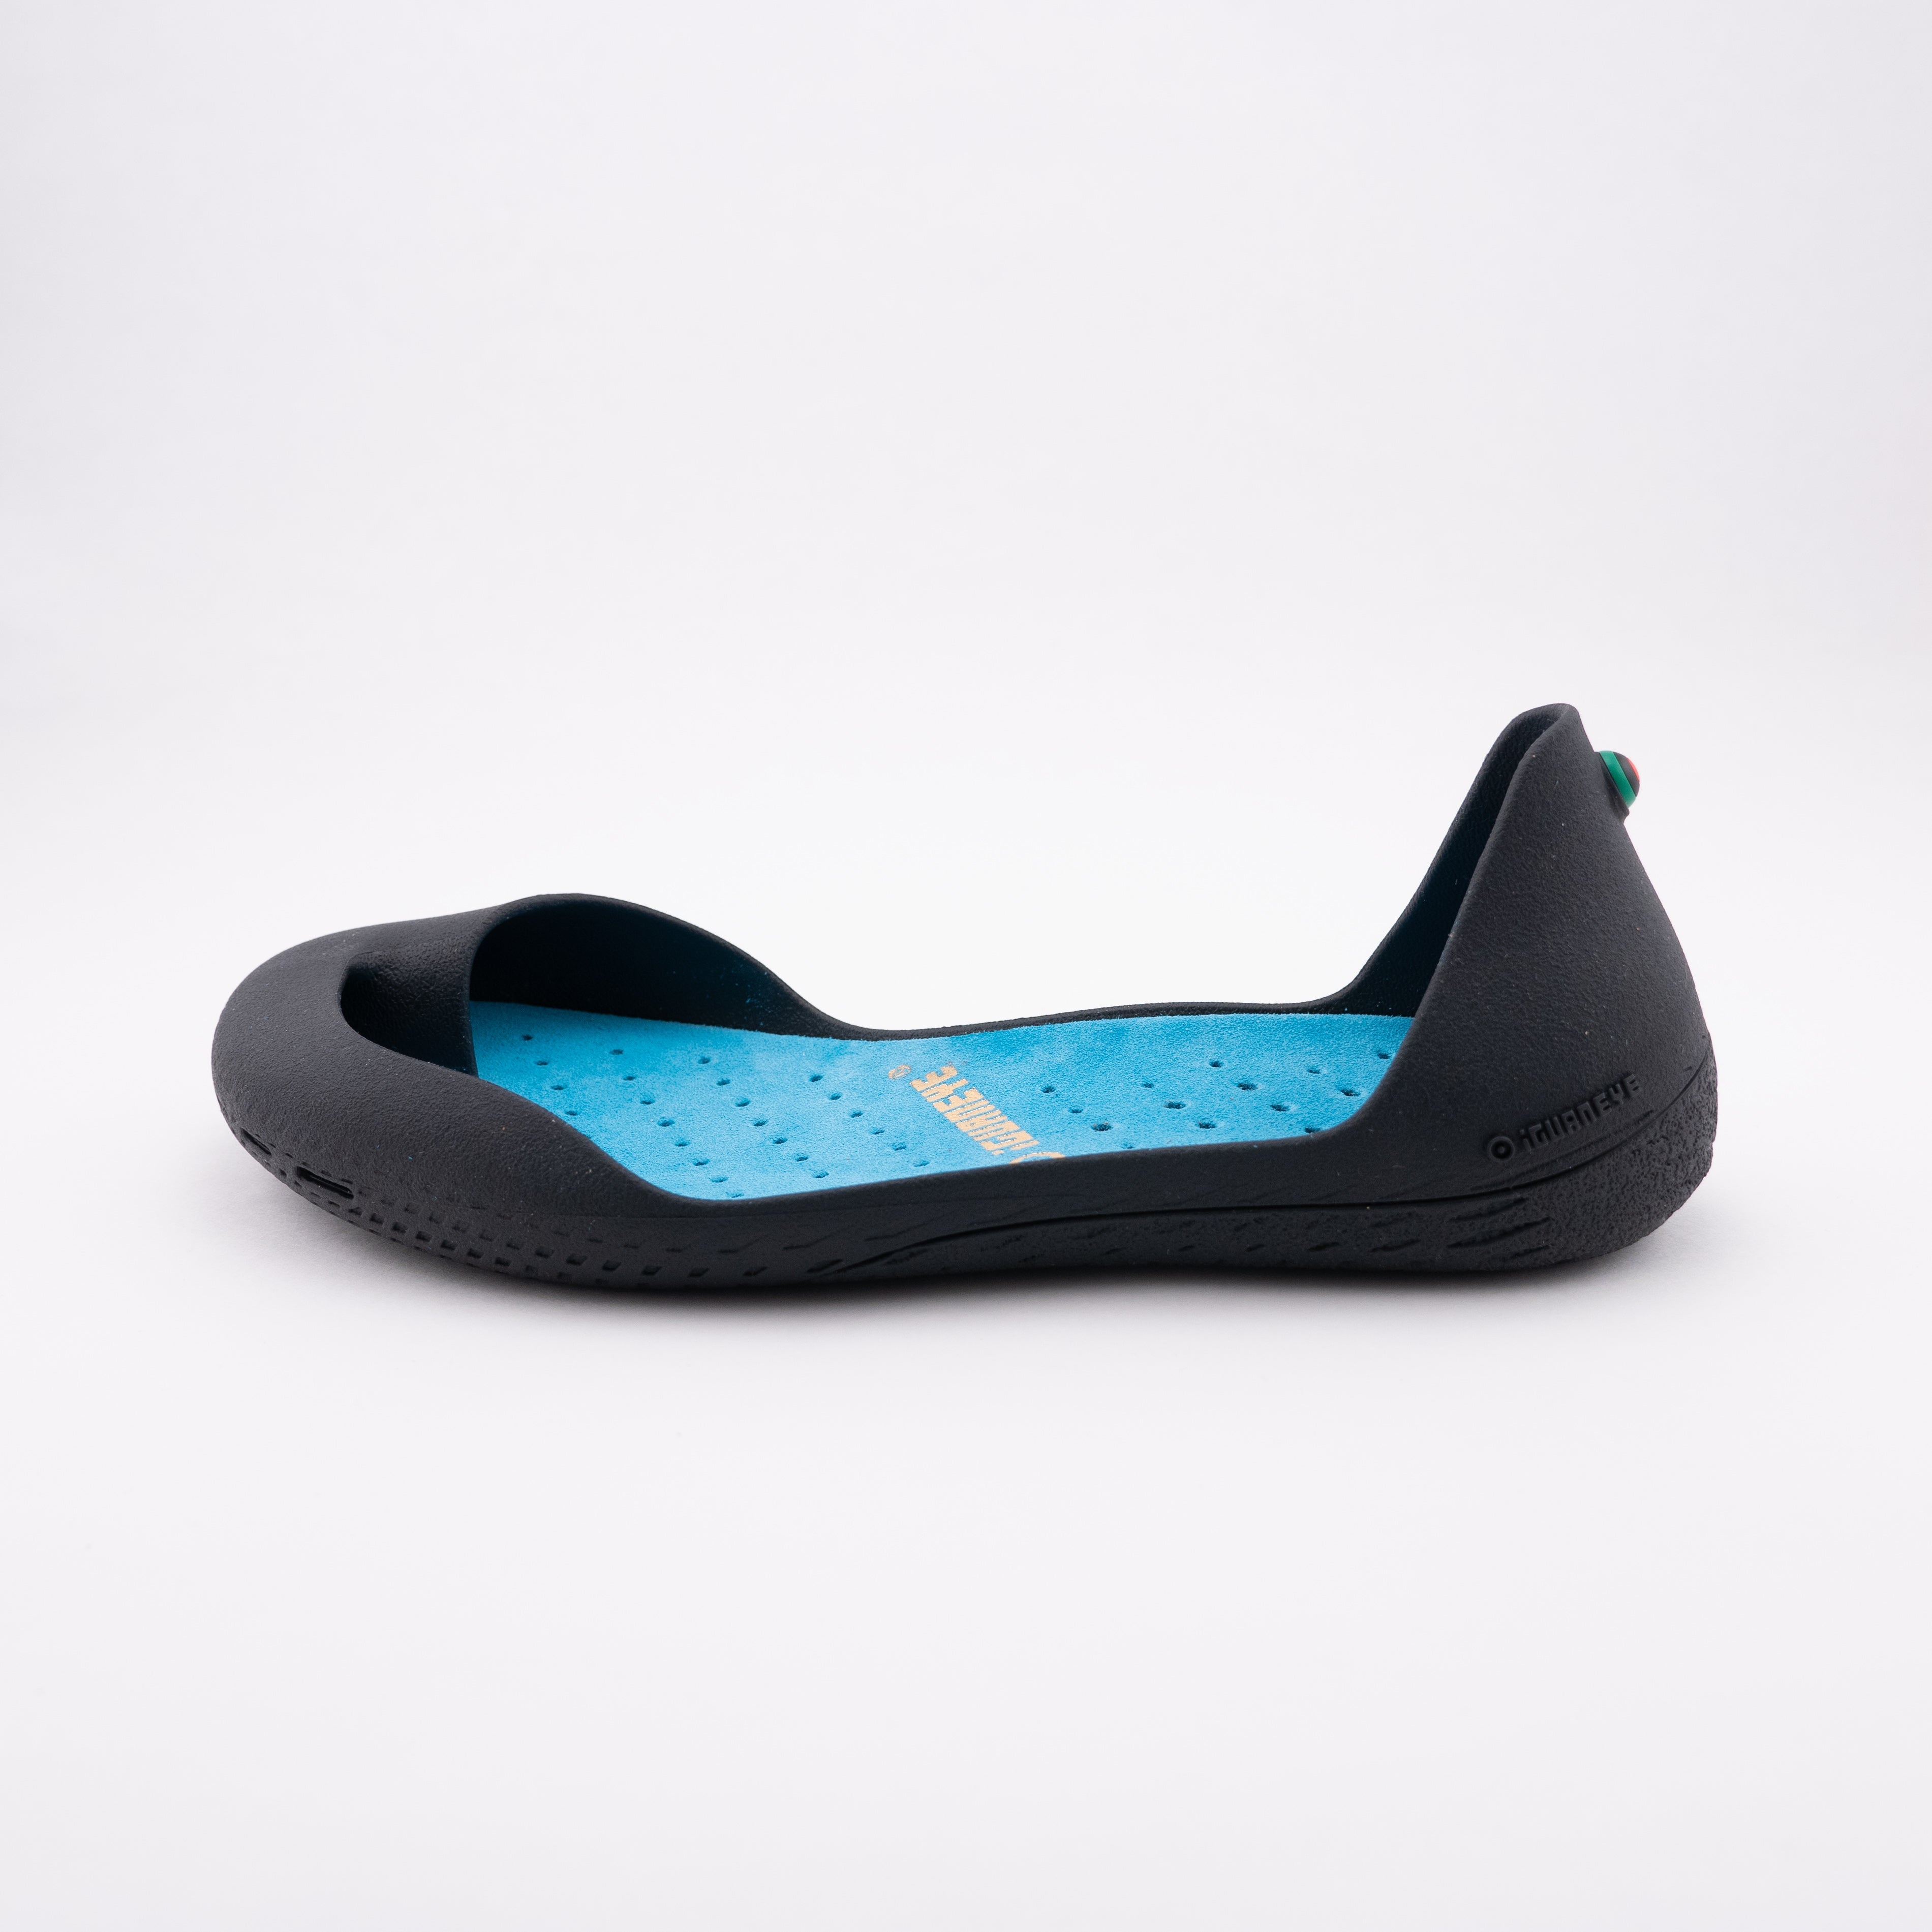 Charcoal Grey plus Turquoise Blue Innensohle